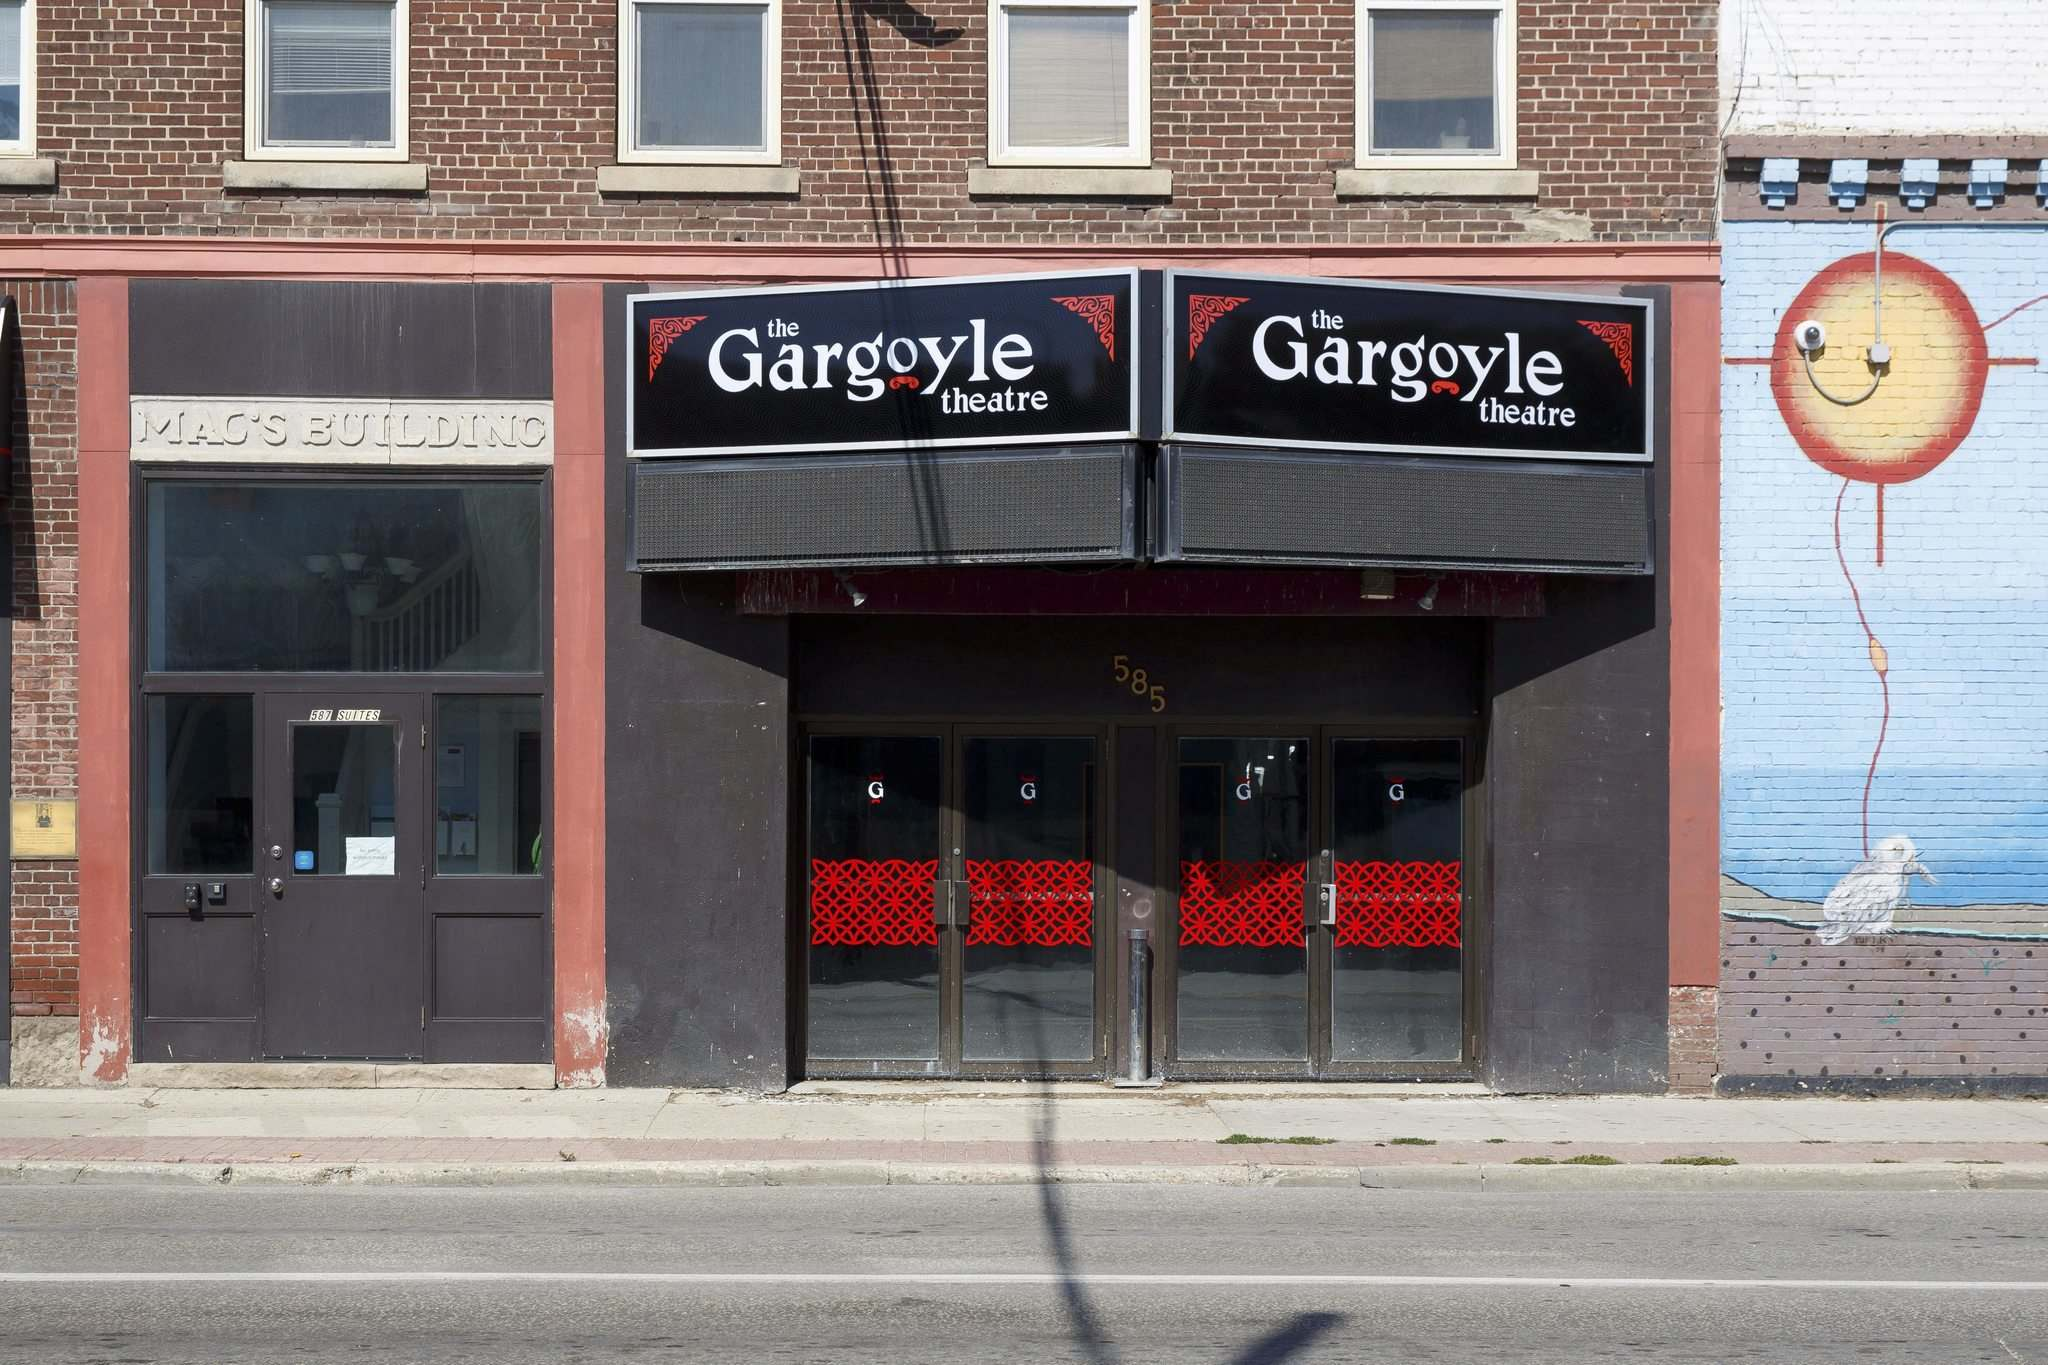 MIKE DEAL / WINNIPEG FREE PRESS</p><p>The former Ellice Theatre at 585 Ellice Ave. is now the Gargoyle.</p>